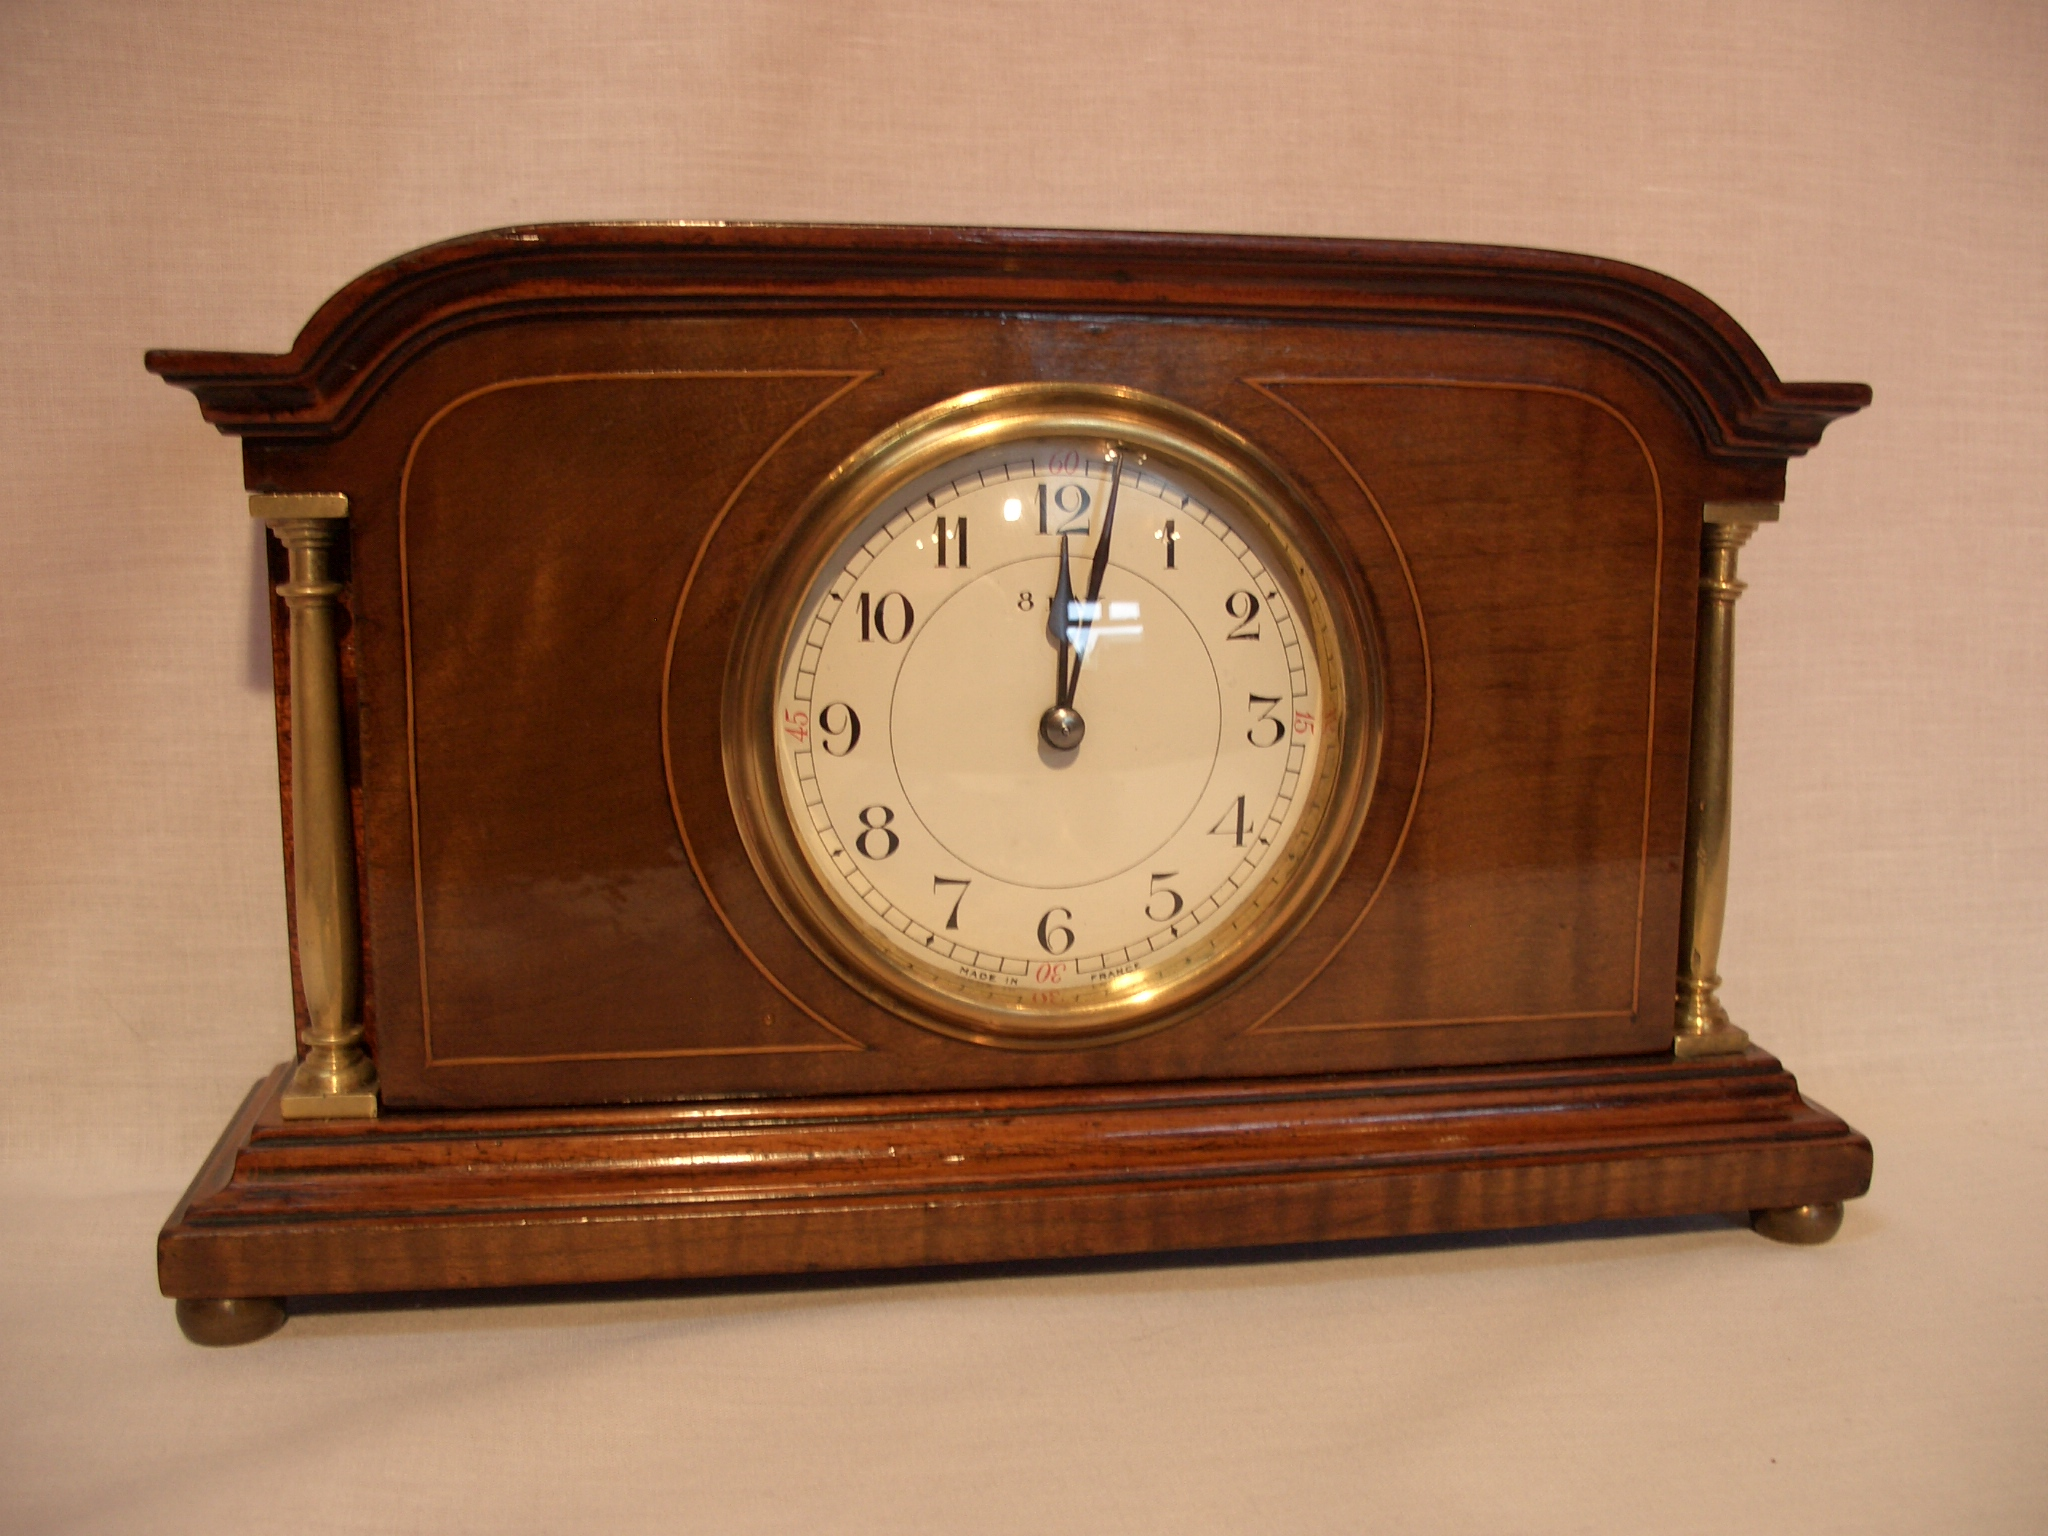 Japy Freres, Edwardian Mantel Clock – SOLD